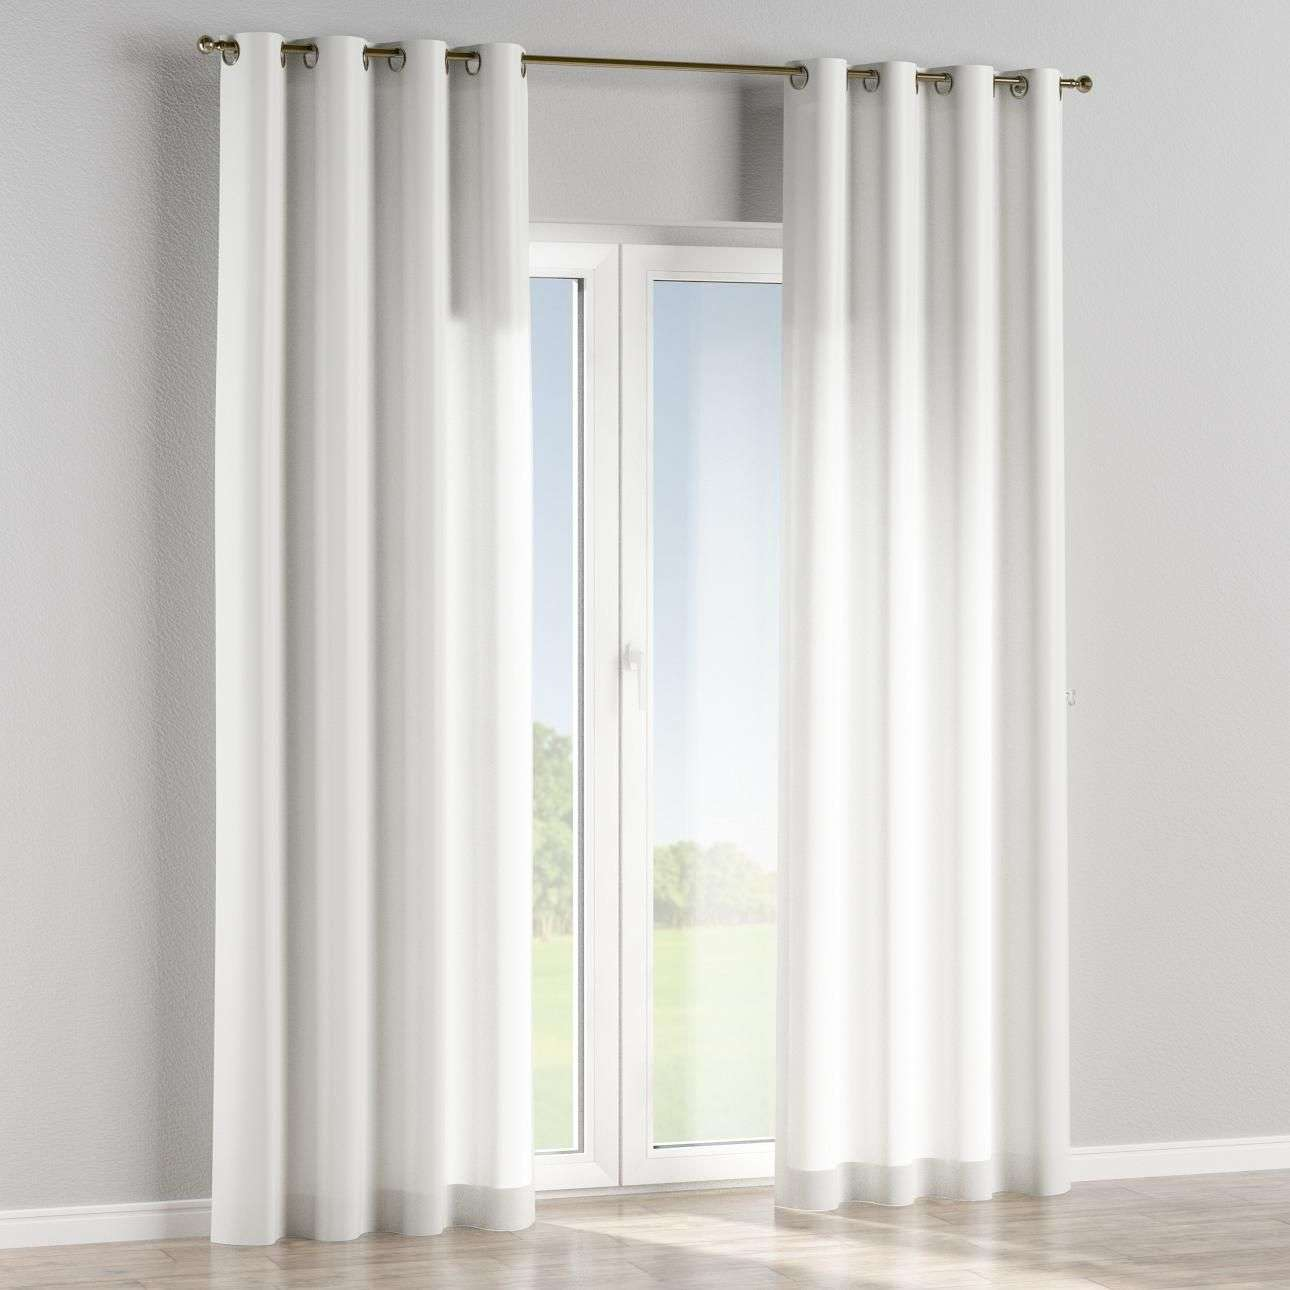 Eyelet curtains in collection Amelie , fabric: 135-64